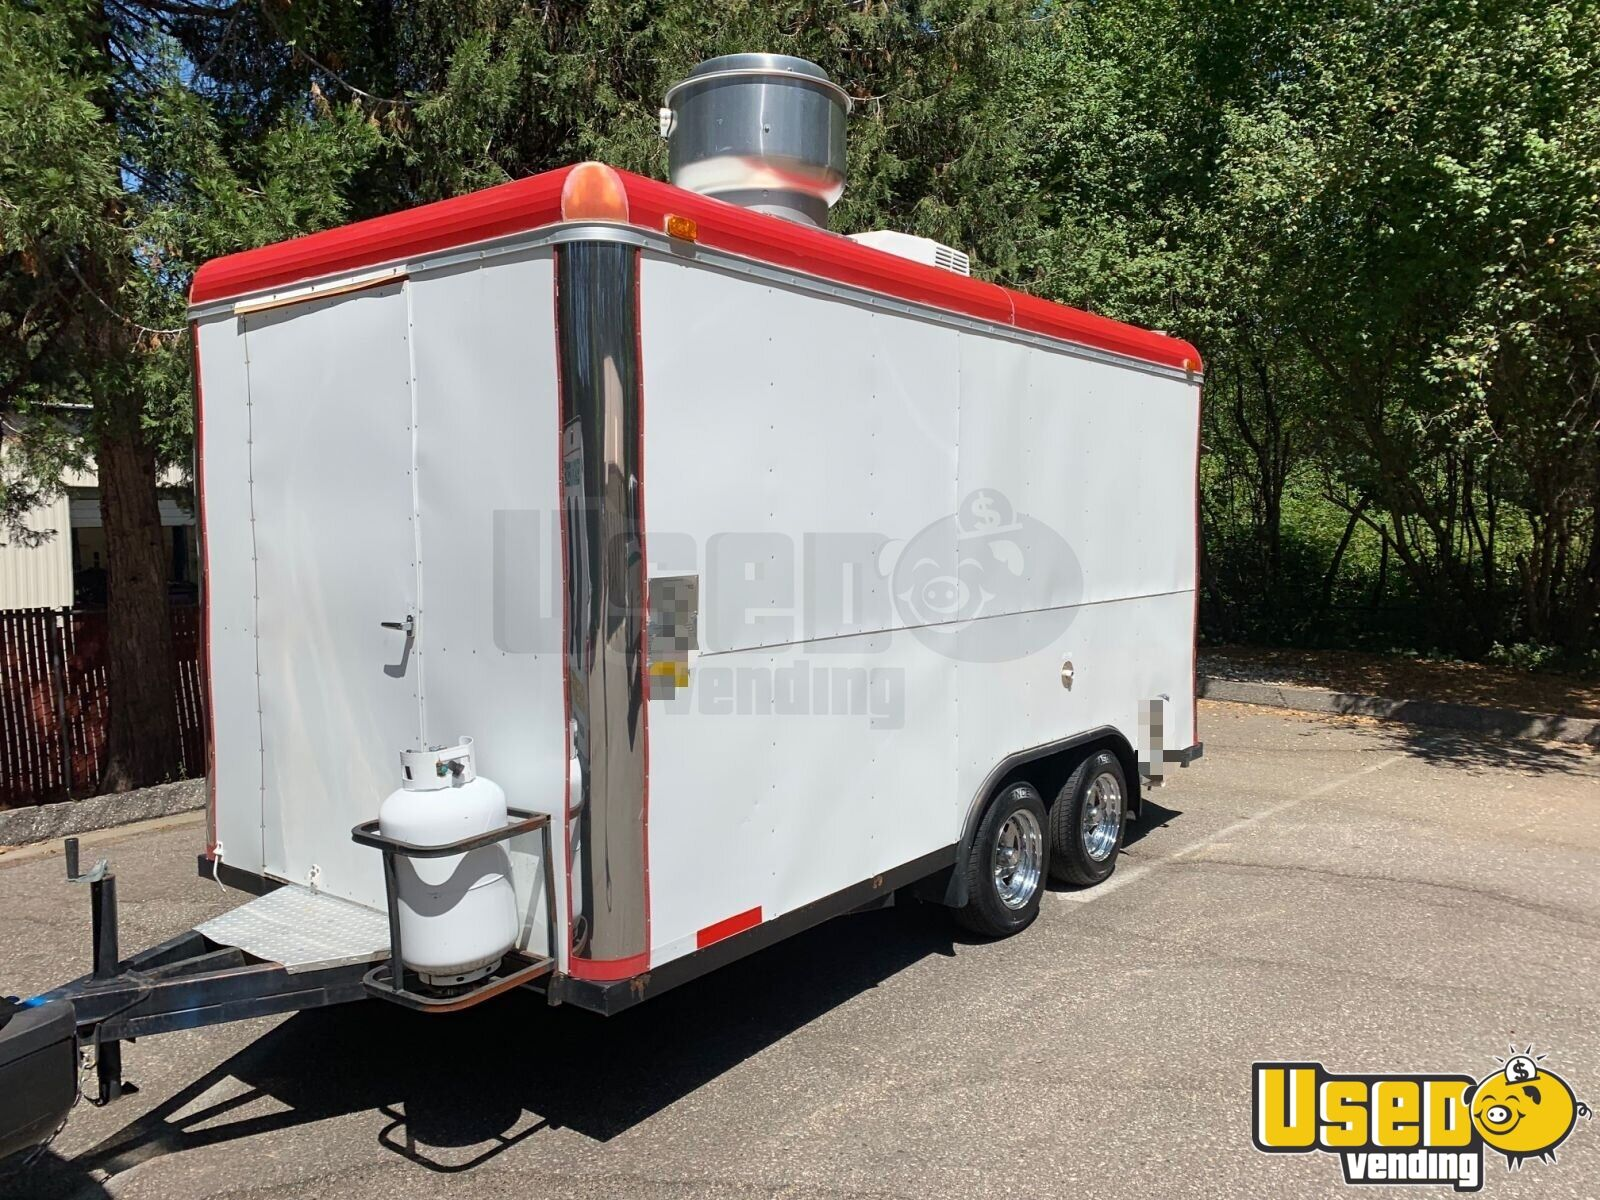 2008 Sanchez Trailers 7x14 All-purpose Food Trailer Concession Window California for Sale - 3